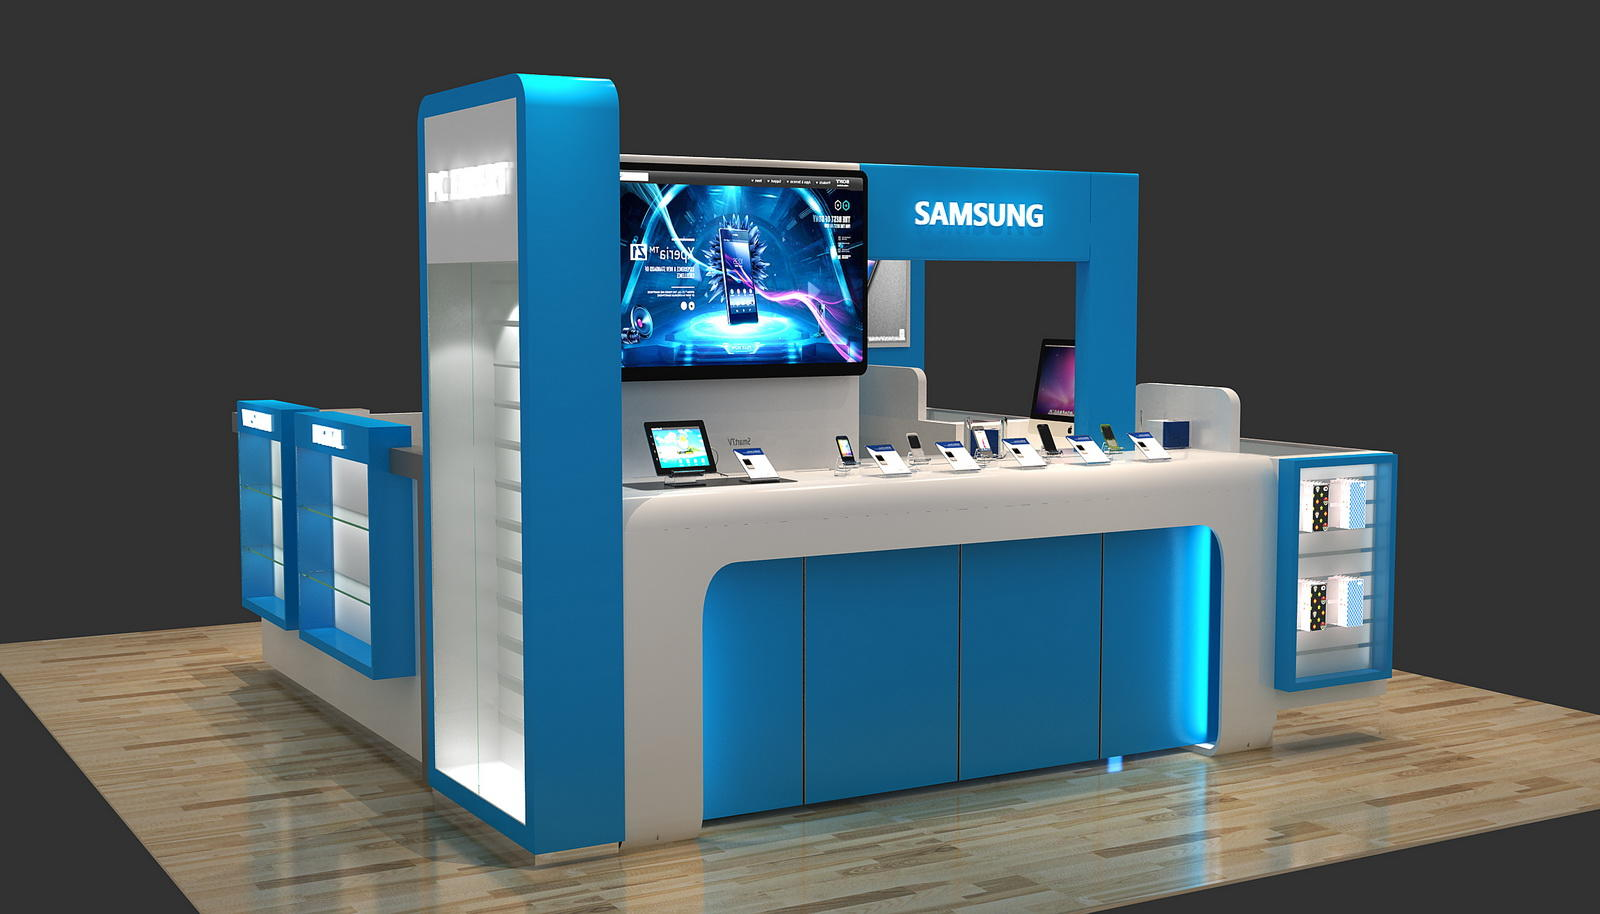 Top Brand Mobile Shop Interior Design Ideas Showcase Fast Delivery For Store Ouyee